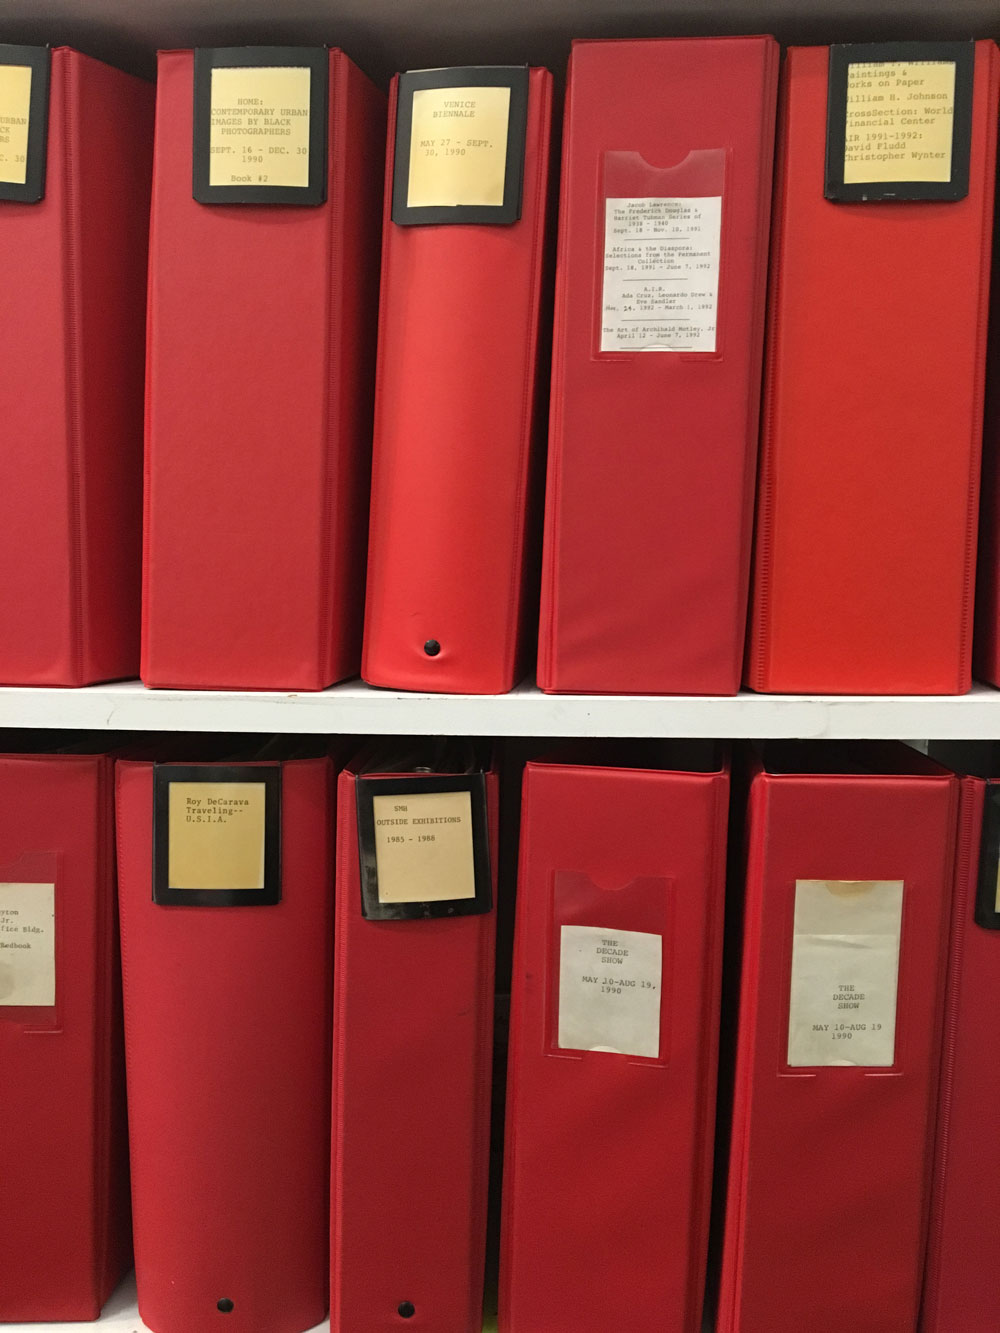 Two shelves displaying large red labeled binders.